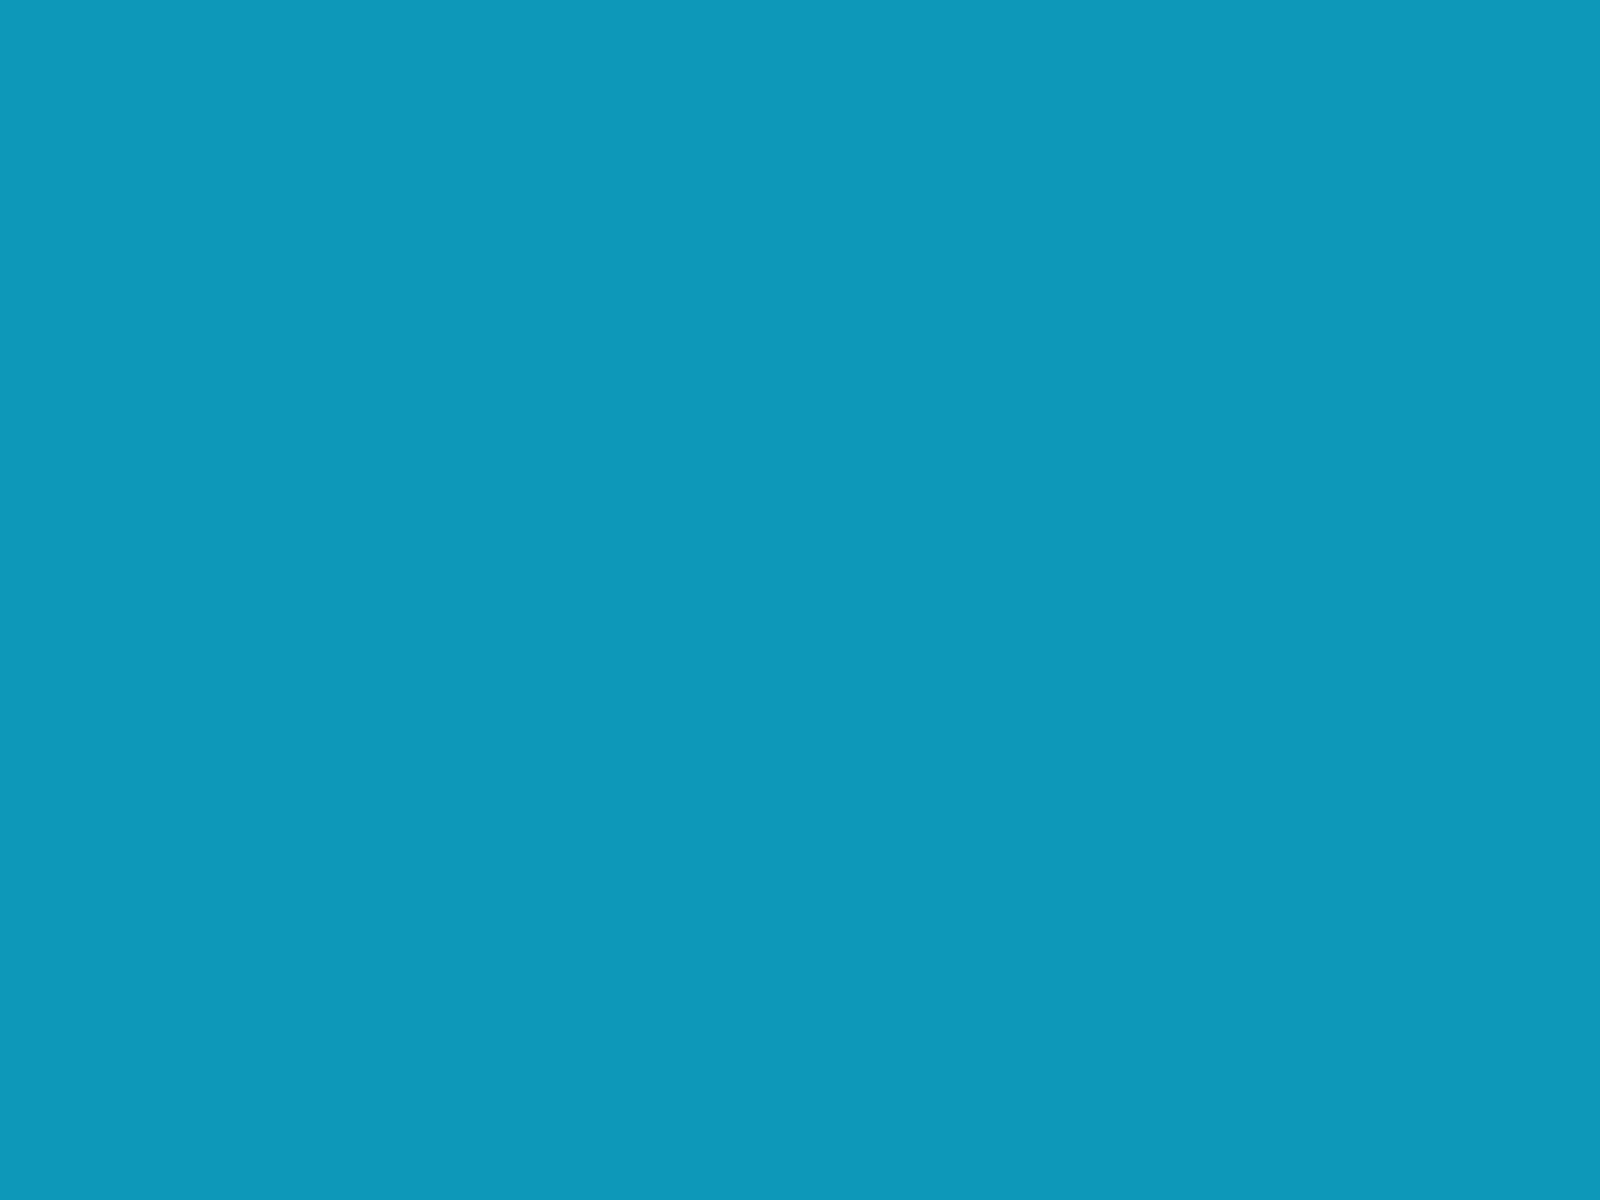 1600x1200 Blue-green Solid Color Background